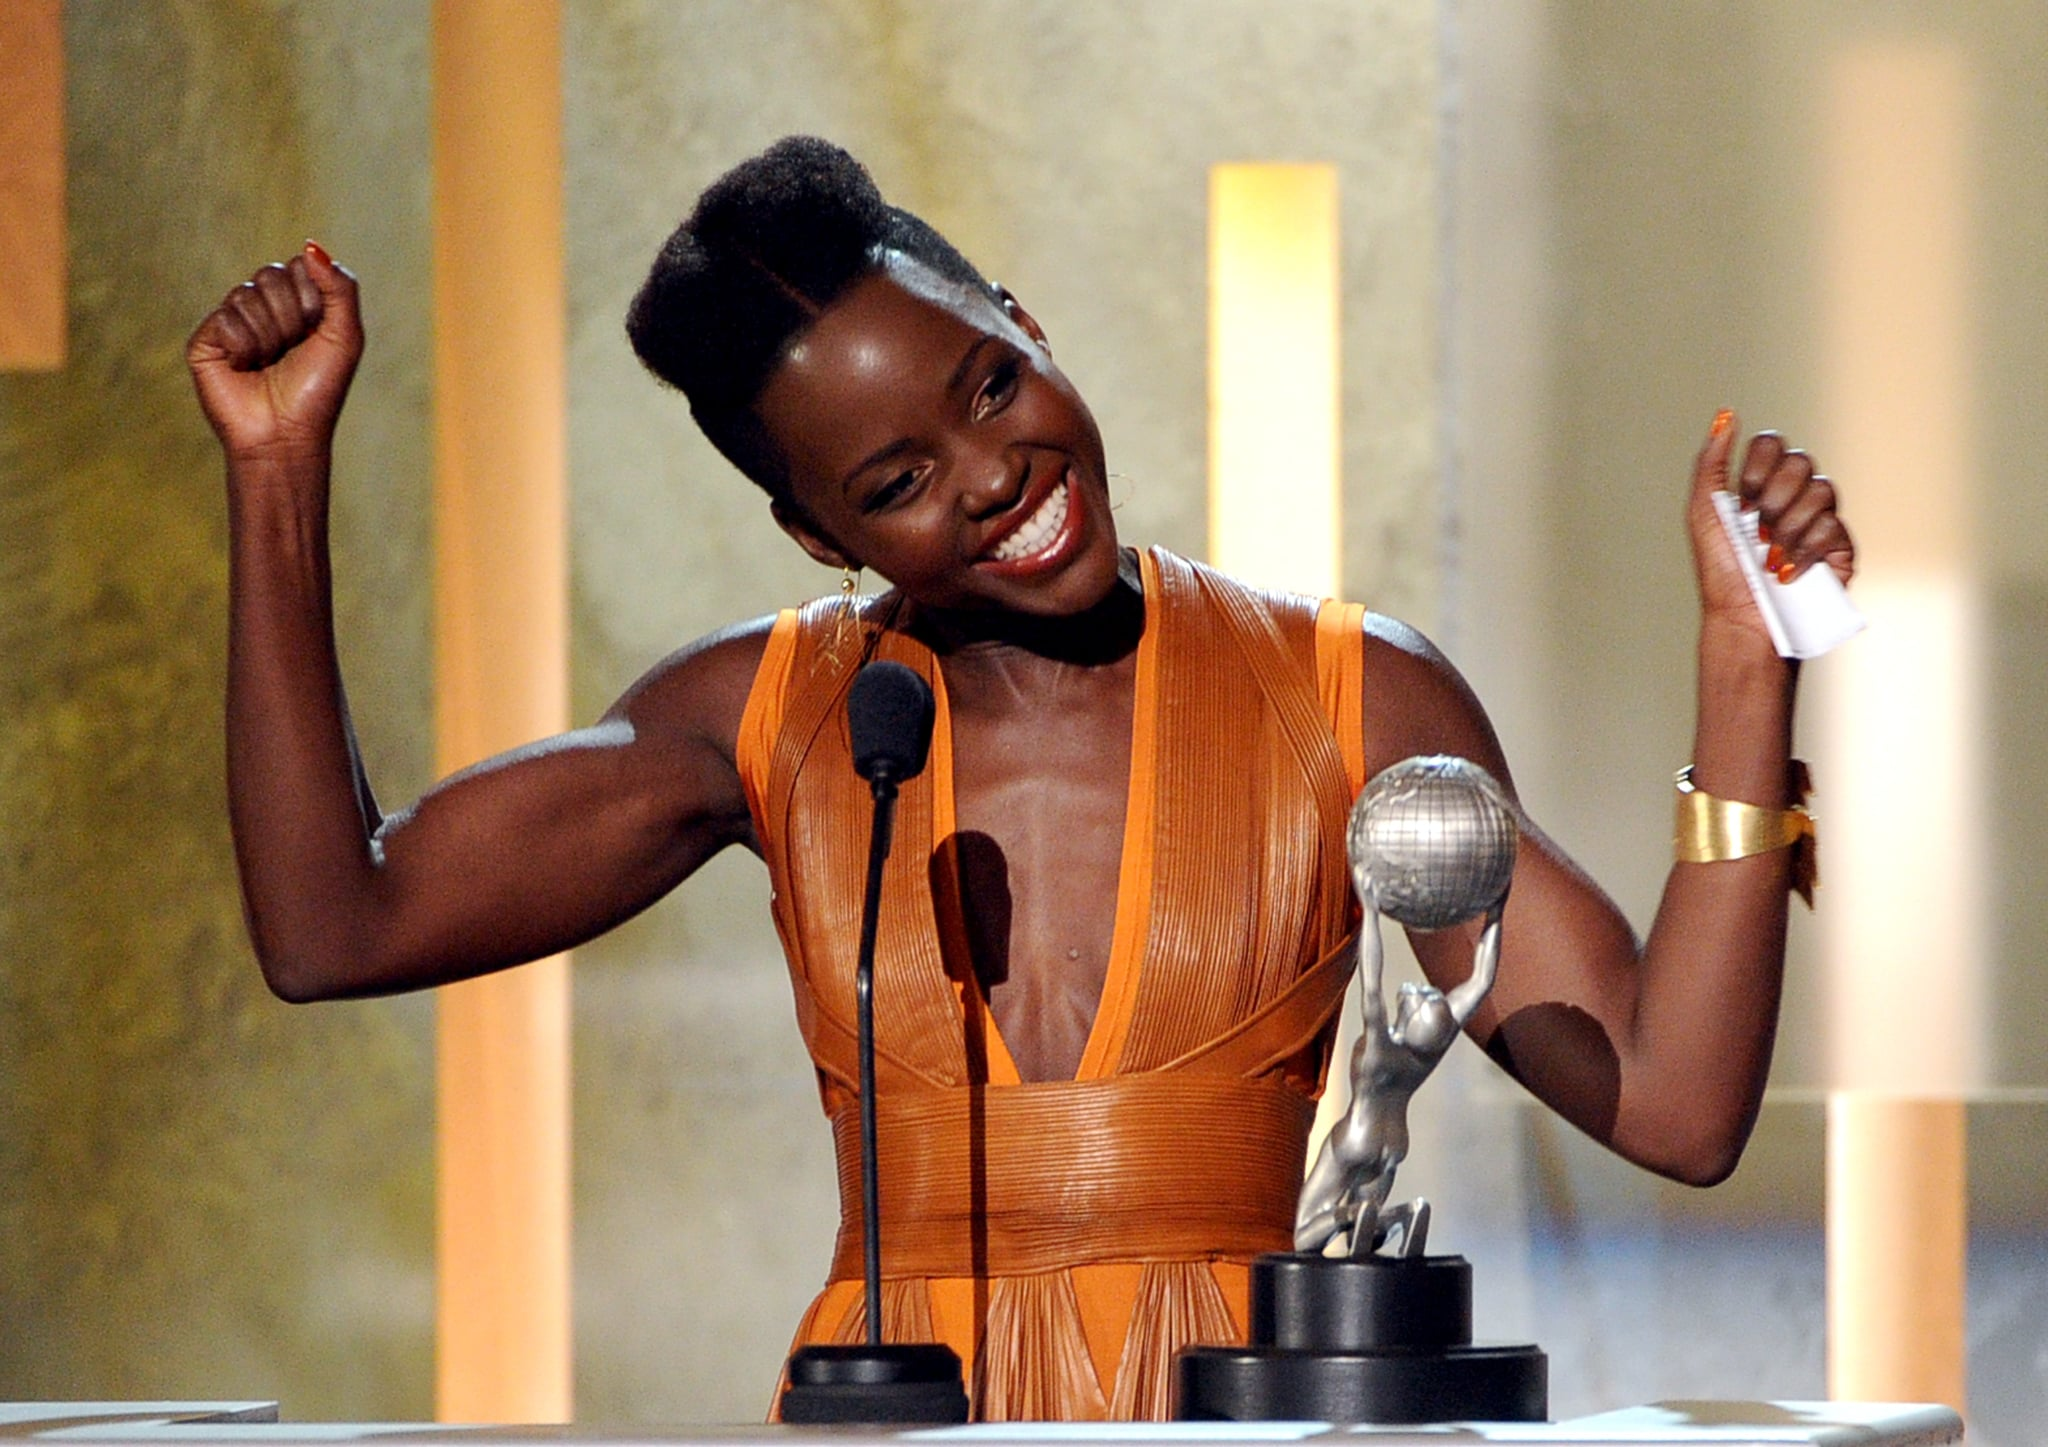 Lupita Nyong'o was over the moon after winning best supporting actress at the NAACP Image Awards.